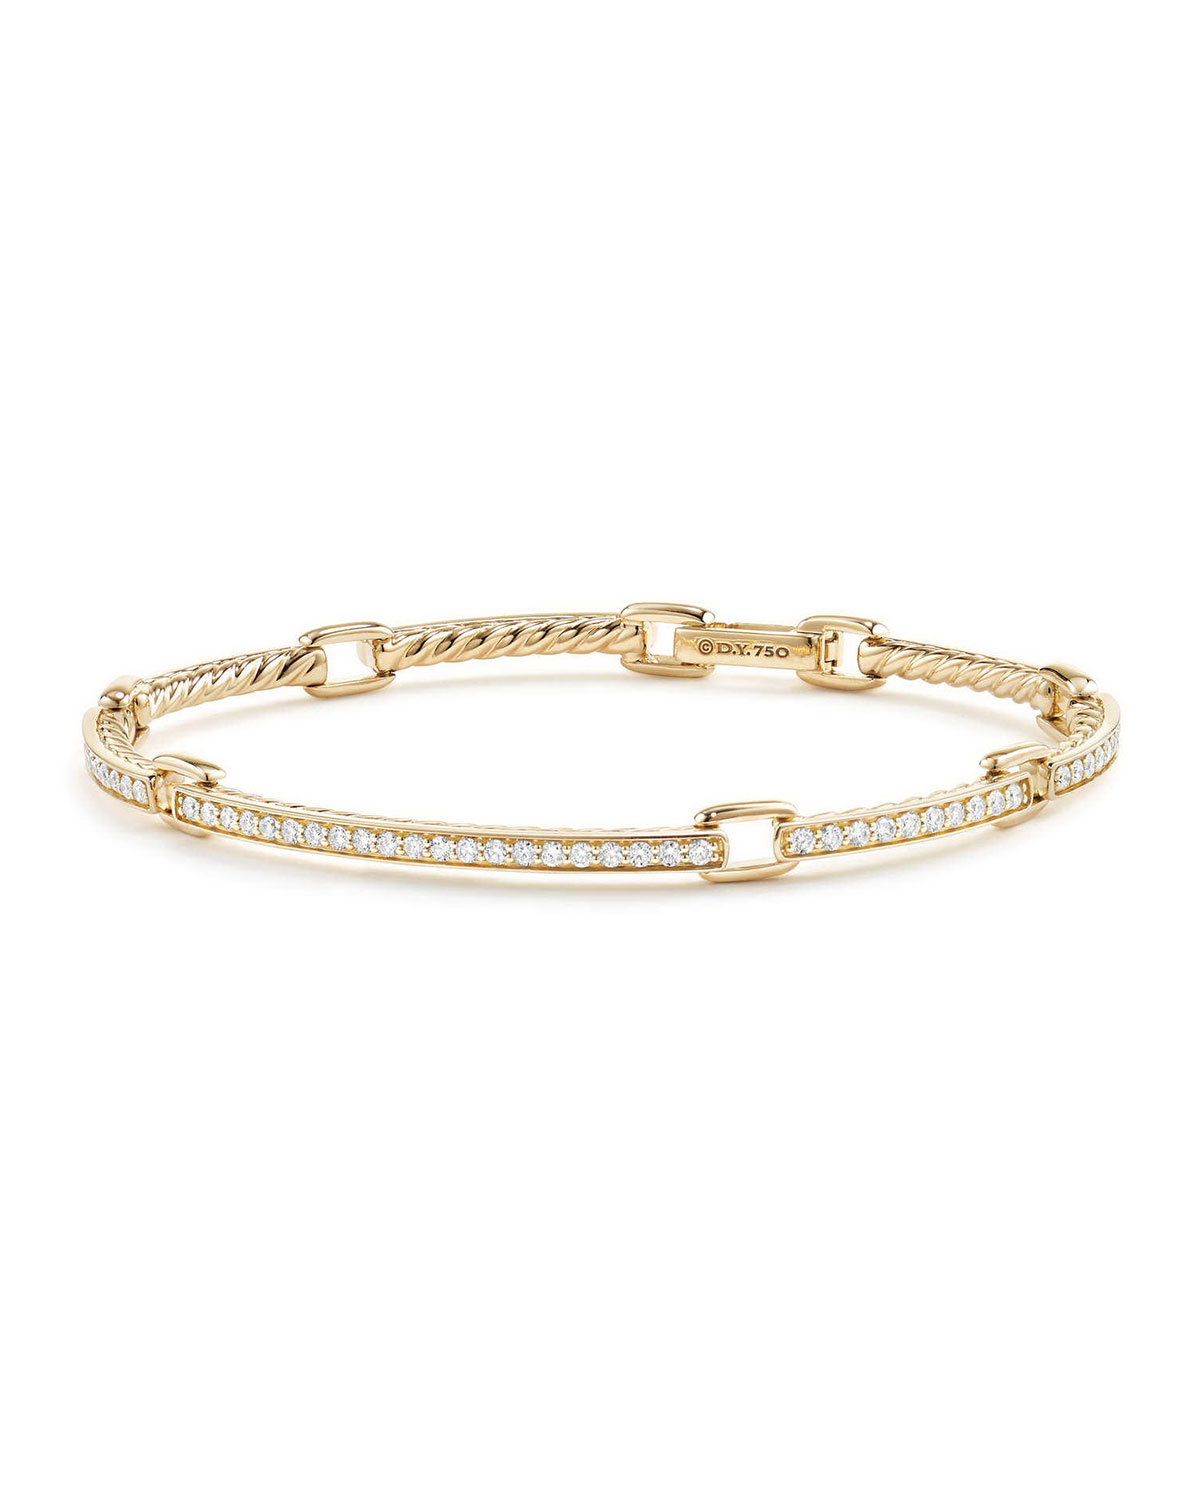 Pee Pave Diamond Link Bracelet In 18k Yellow Gold Size Large